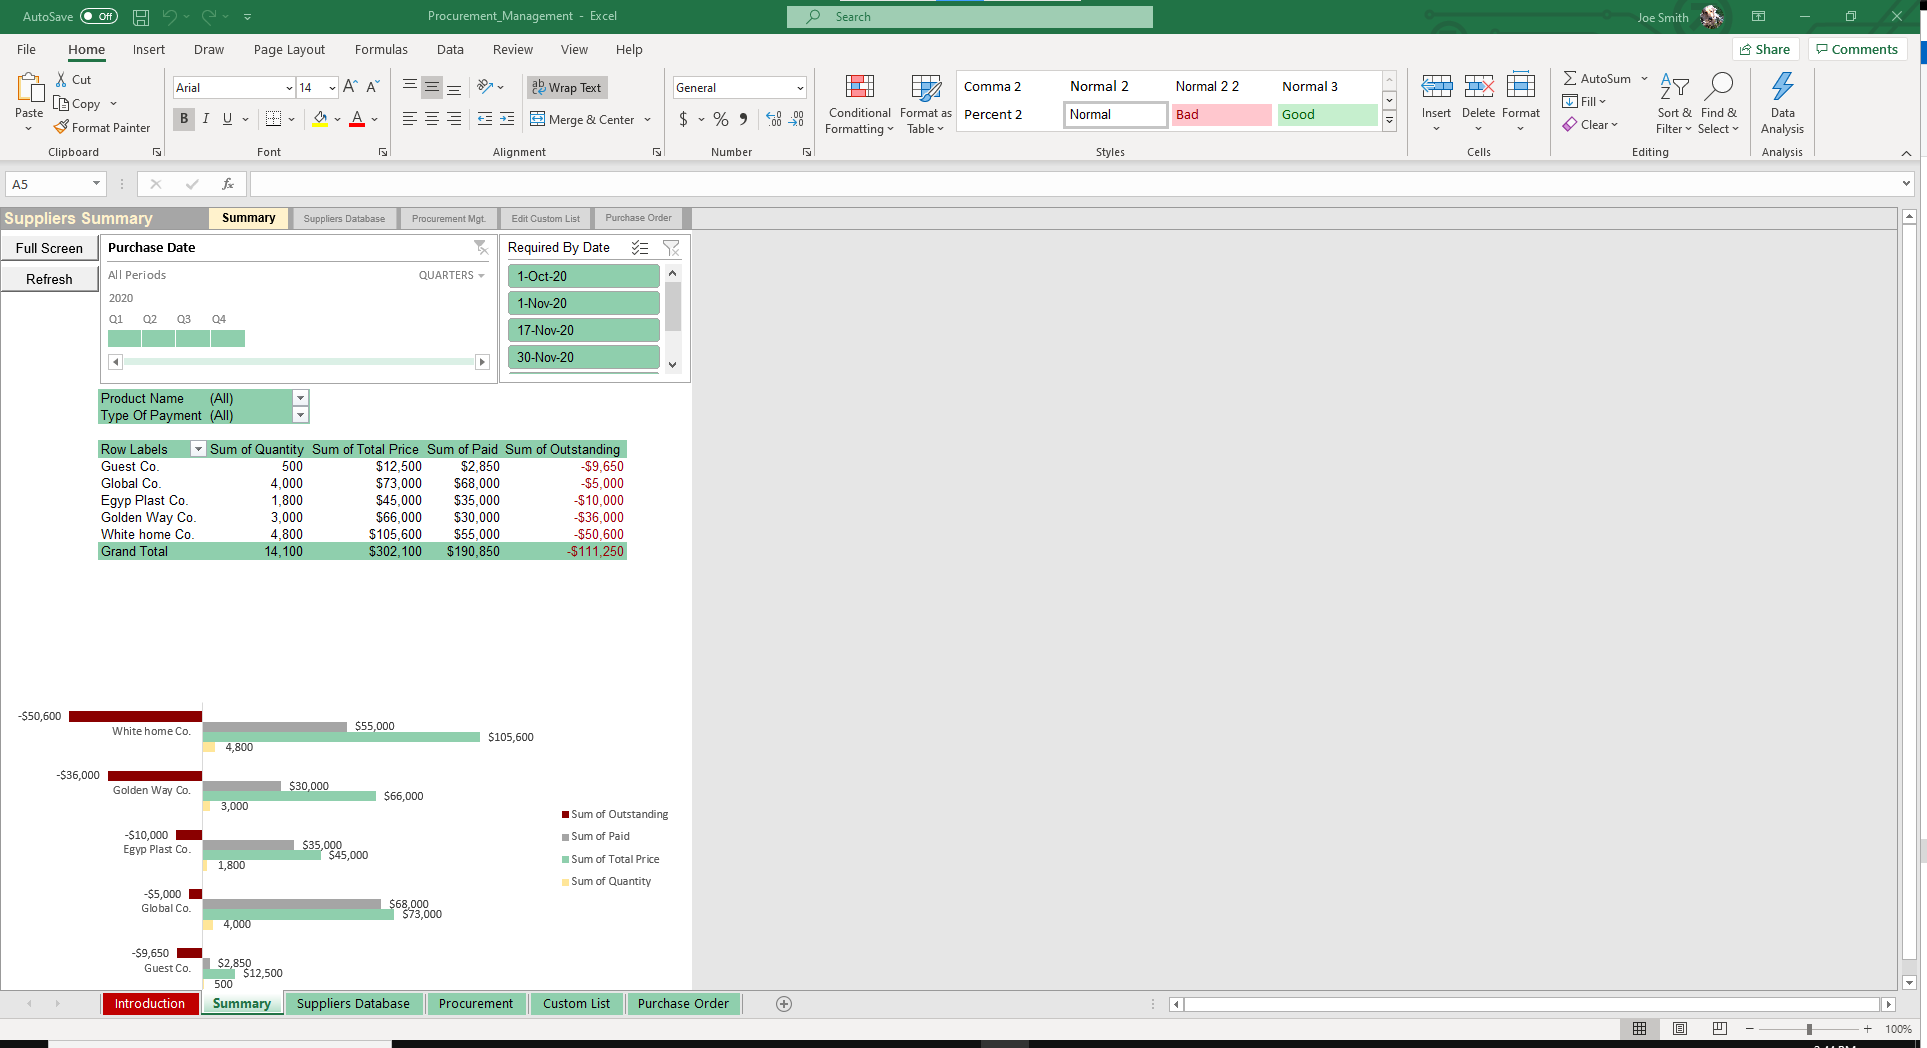 View all your procurement items in the Summary sheet of our Procurement Management Excel Template.